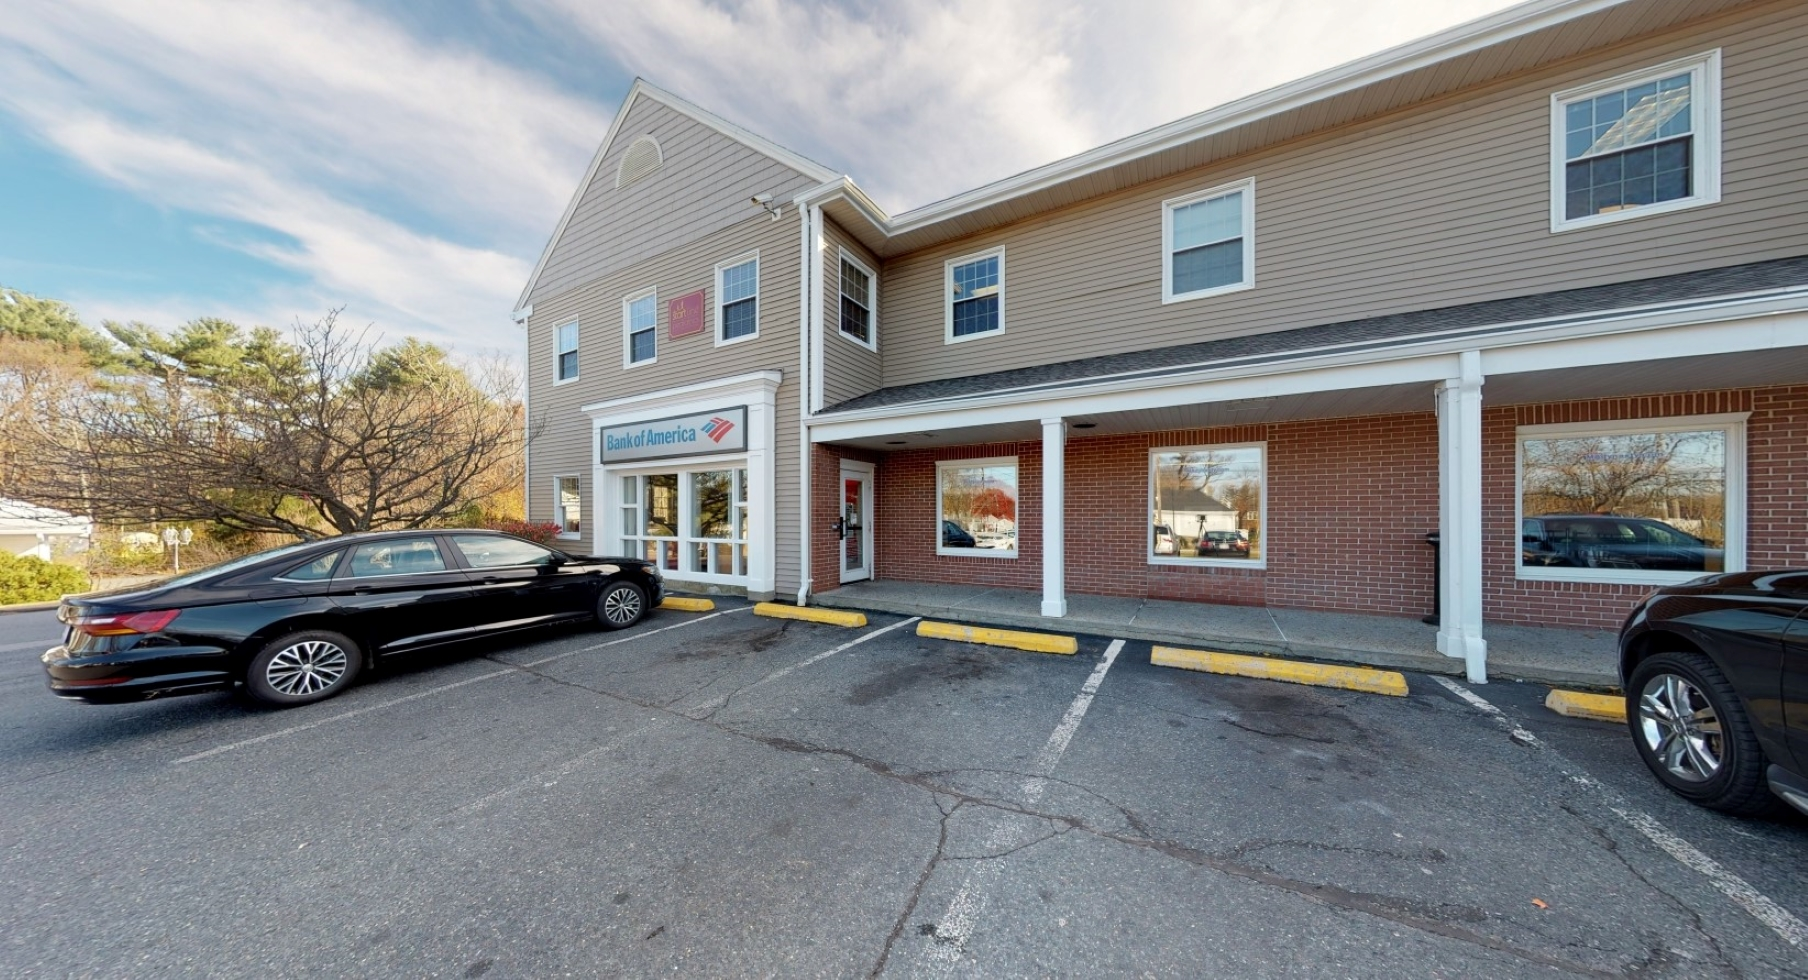 Bank of America financial center with walk-up ATM   77 W Main St, Hopkinton, MA 01748